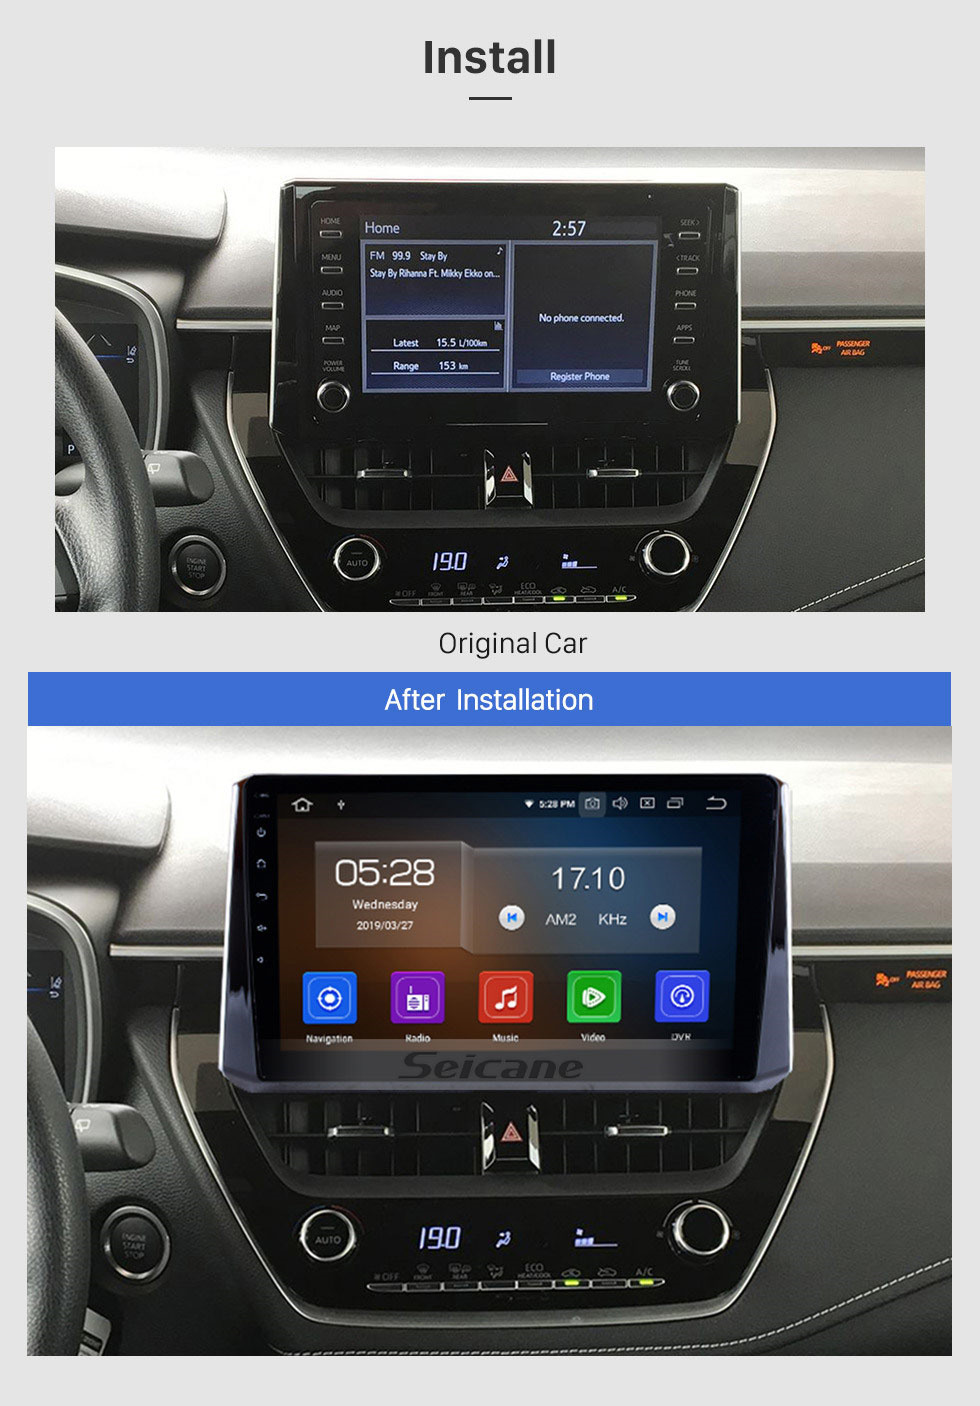 Seicane 10.1 inch Android 9.0 2019 Toyota Corolla GPS Navigation system Support Radio IPS Full Screen 3G WiFi Bluetooth OBD2 Steering Wheel Control